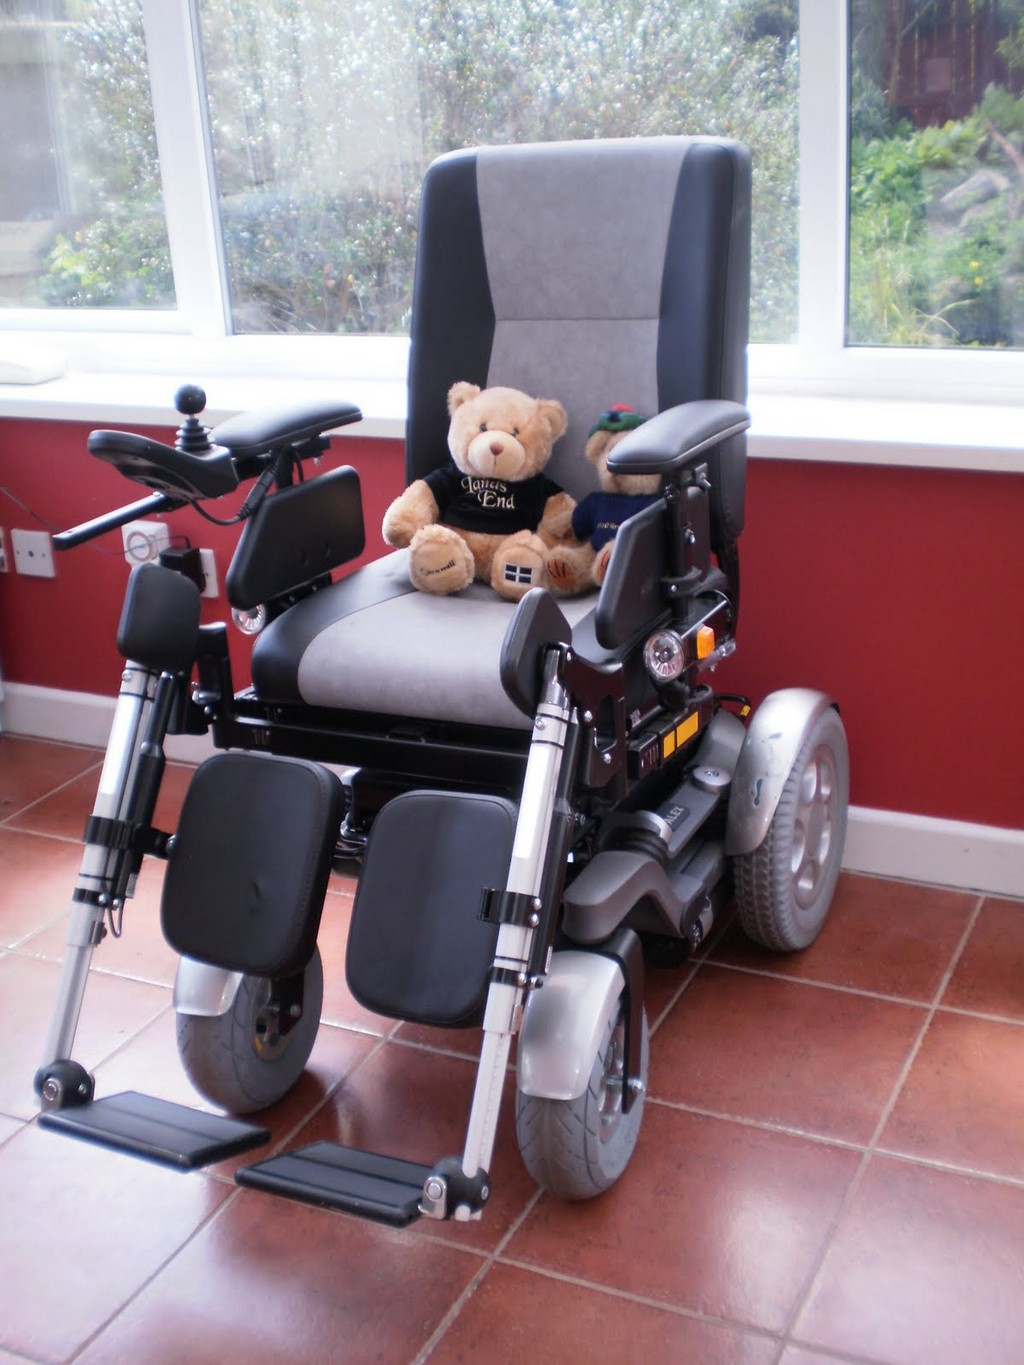 motorized wheelchair lifts, motorized wheelchair parts, electric wheel chairs for rent in orlando, motorized wheelchair medicare